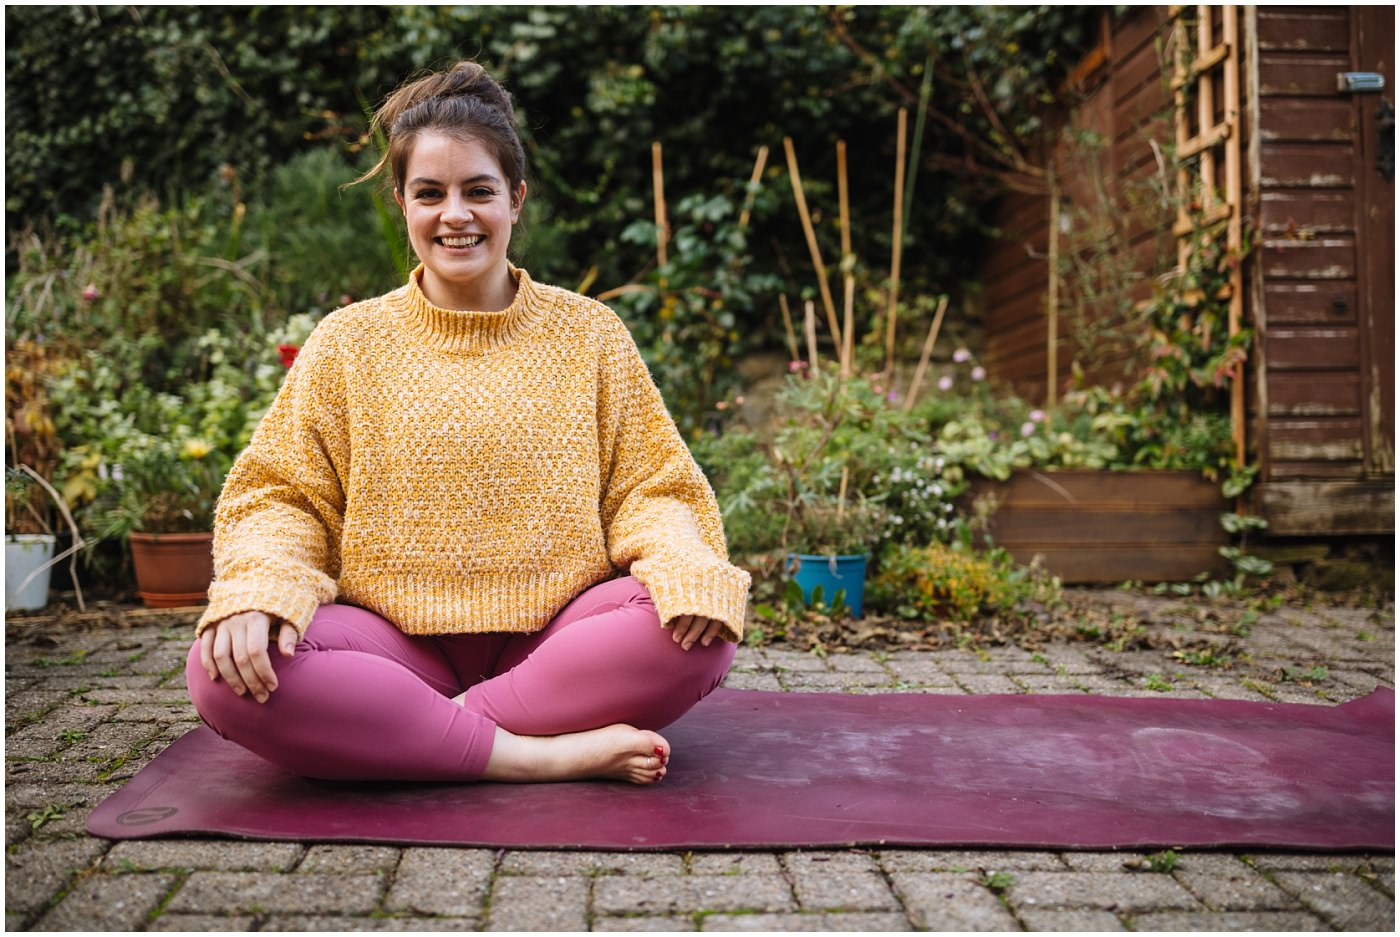 Yoga at home promotional photograph